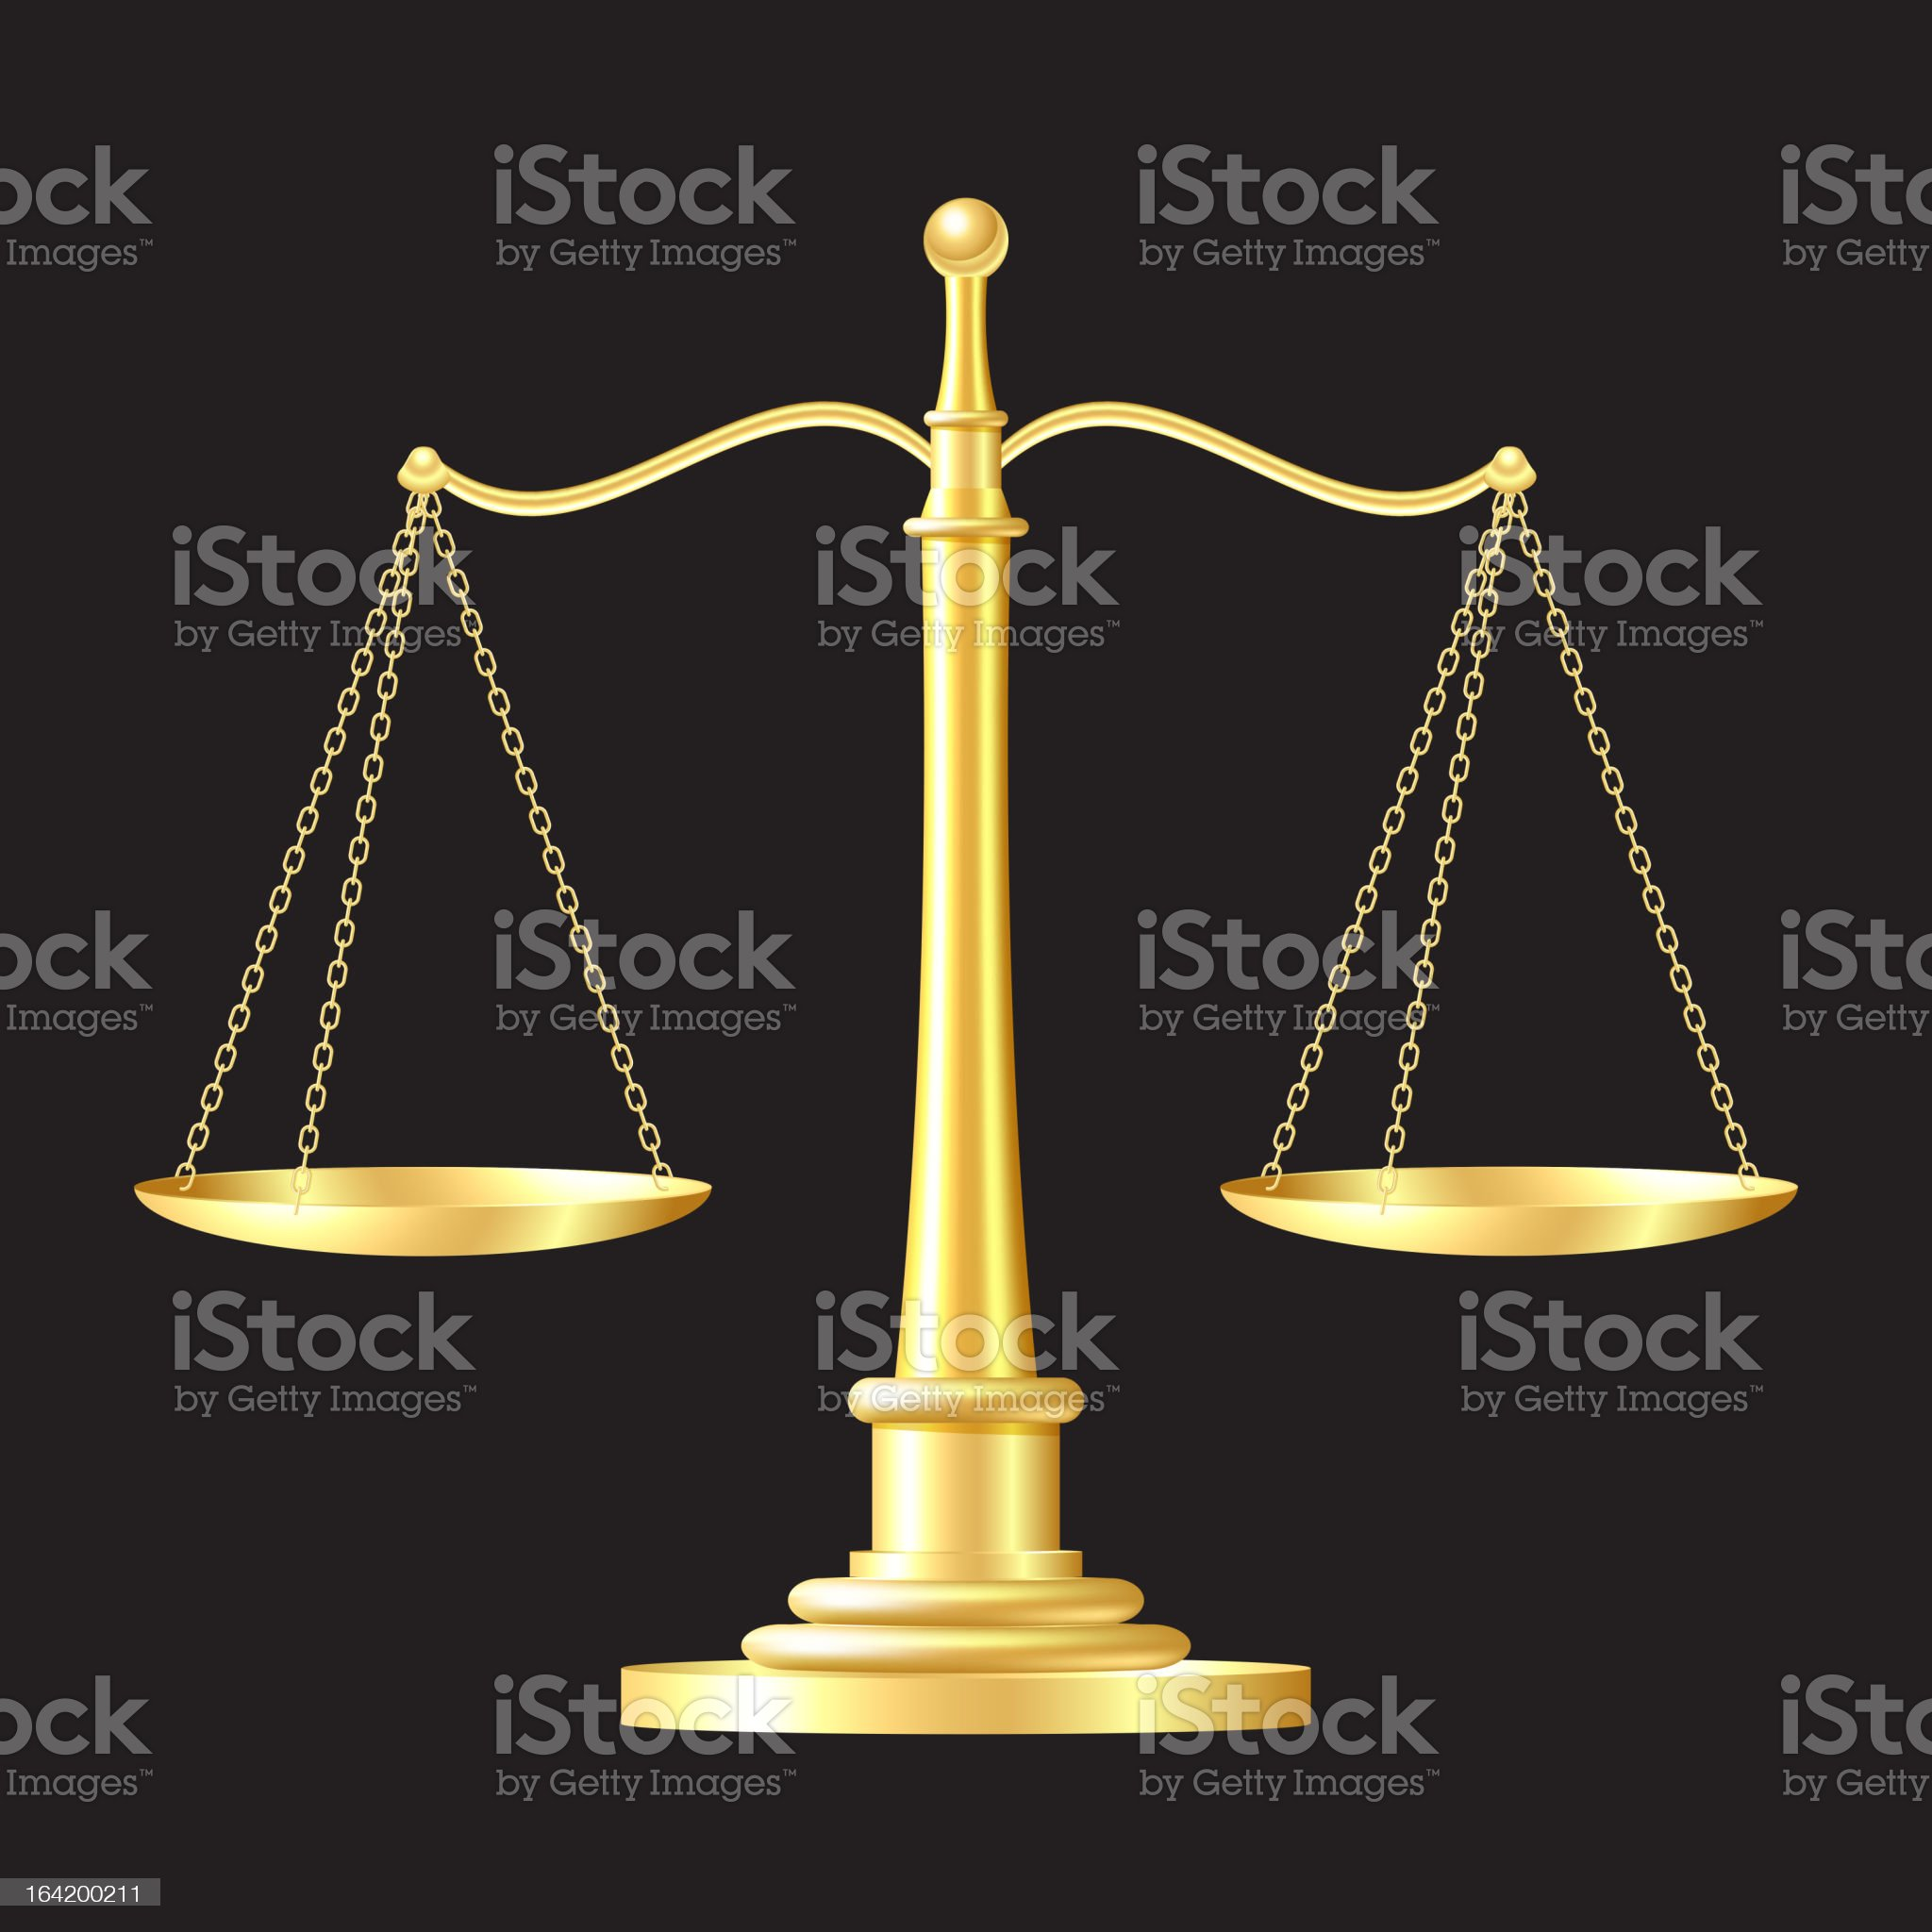 gold scales icon royalty-free stock vector art